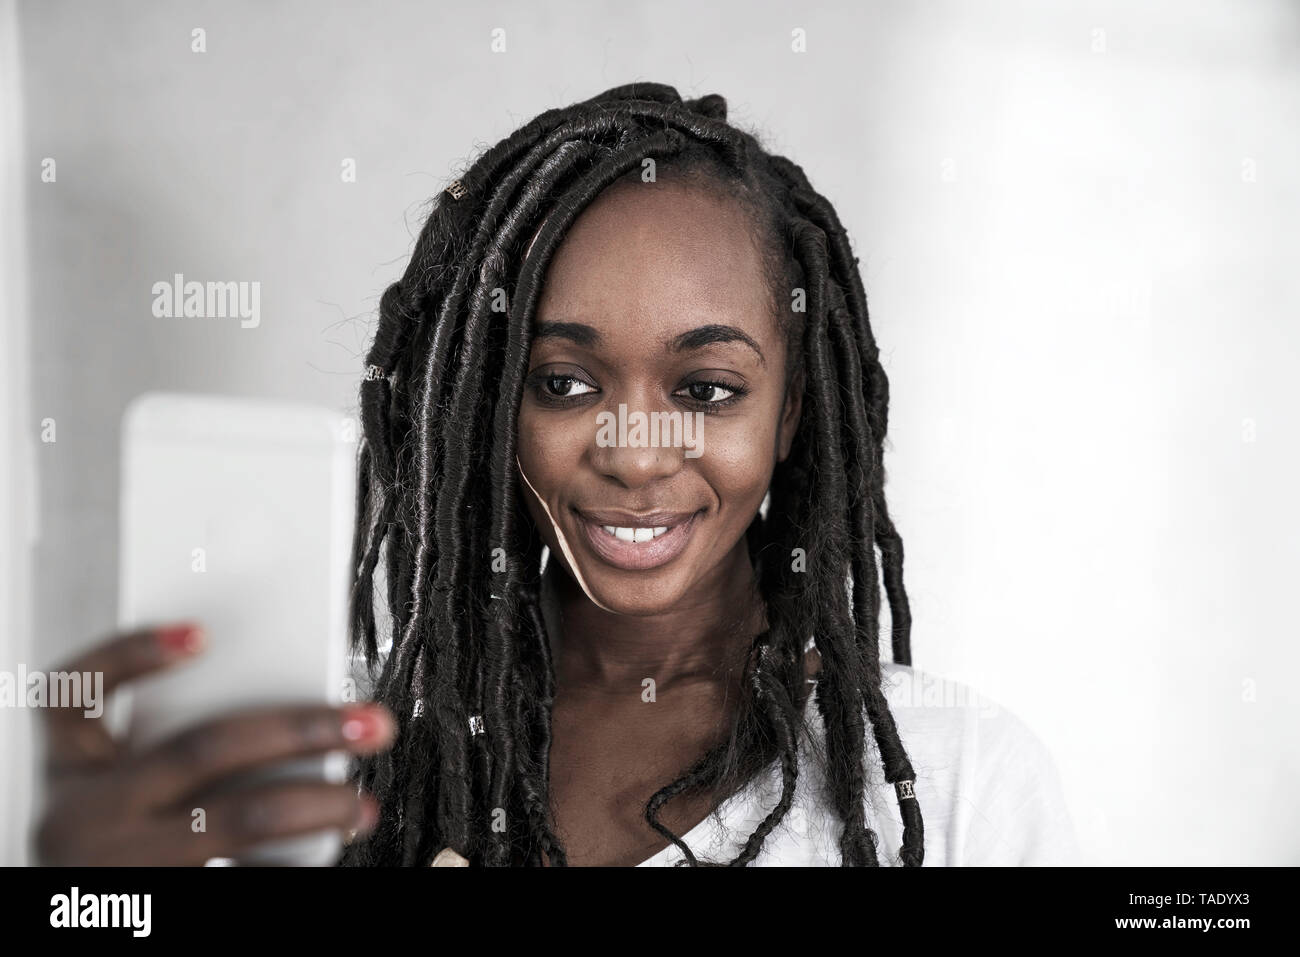 Portrait of smiling woman taking selfie with mobile phone - Stock Image